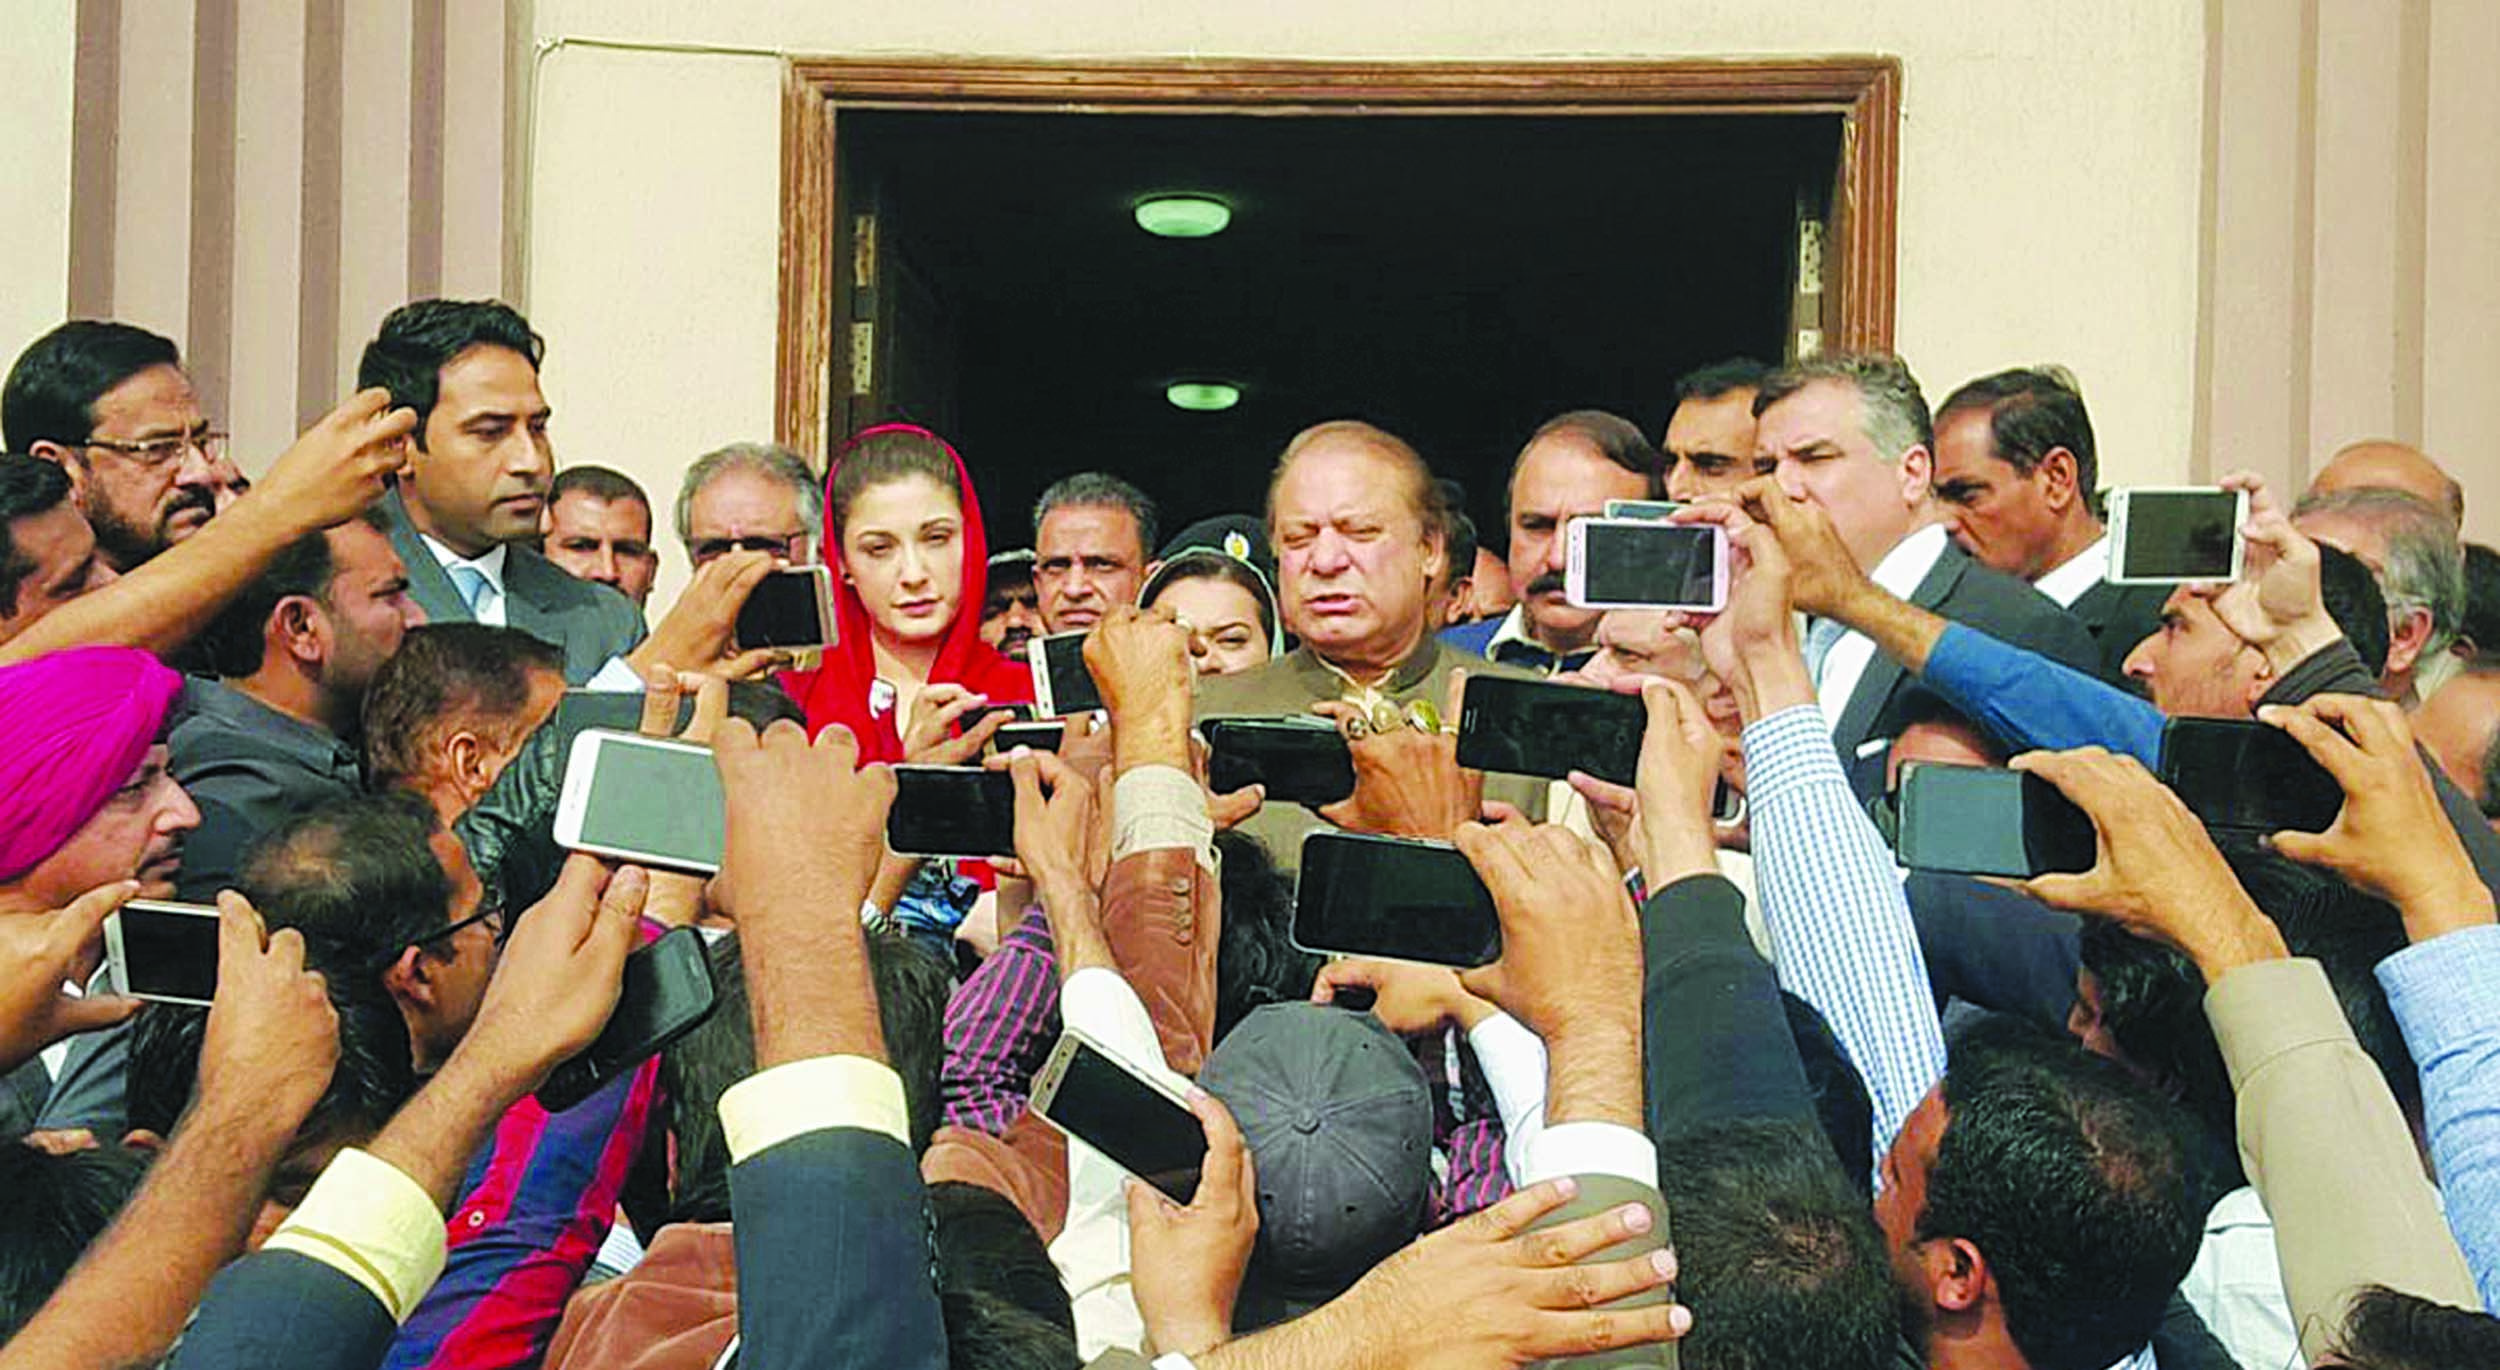 ONCE out of office in the wake of controversy around Panama Papers, Nawaz Sharif and daughter Maryam, among others in the family, had a tough time in and out of the courts.